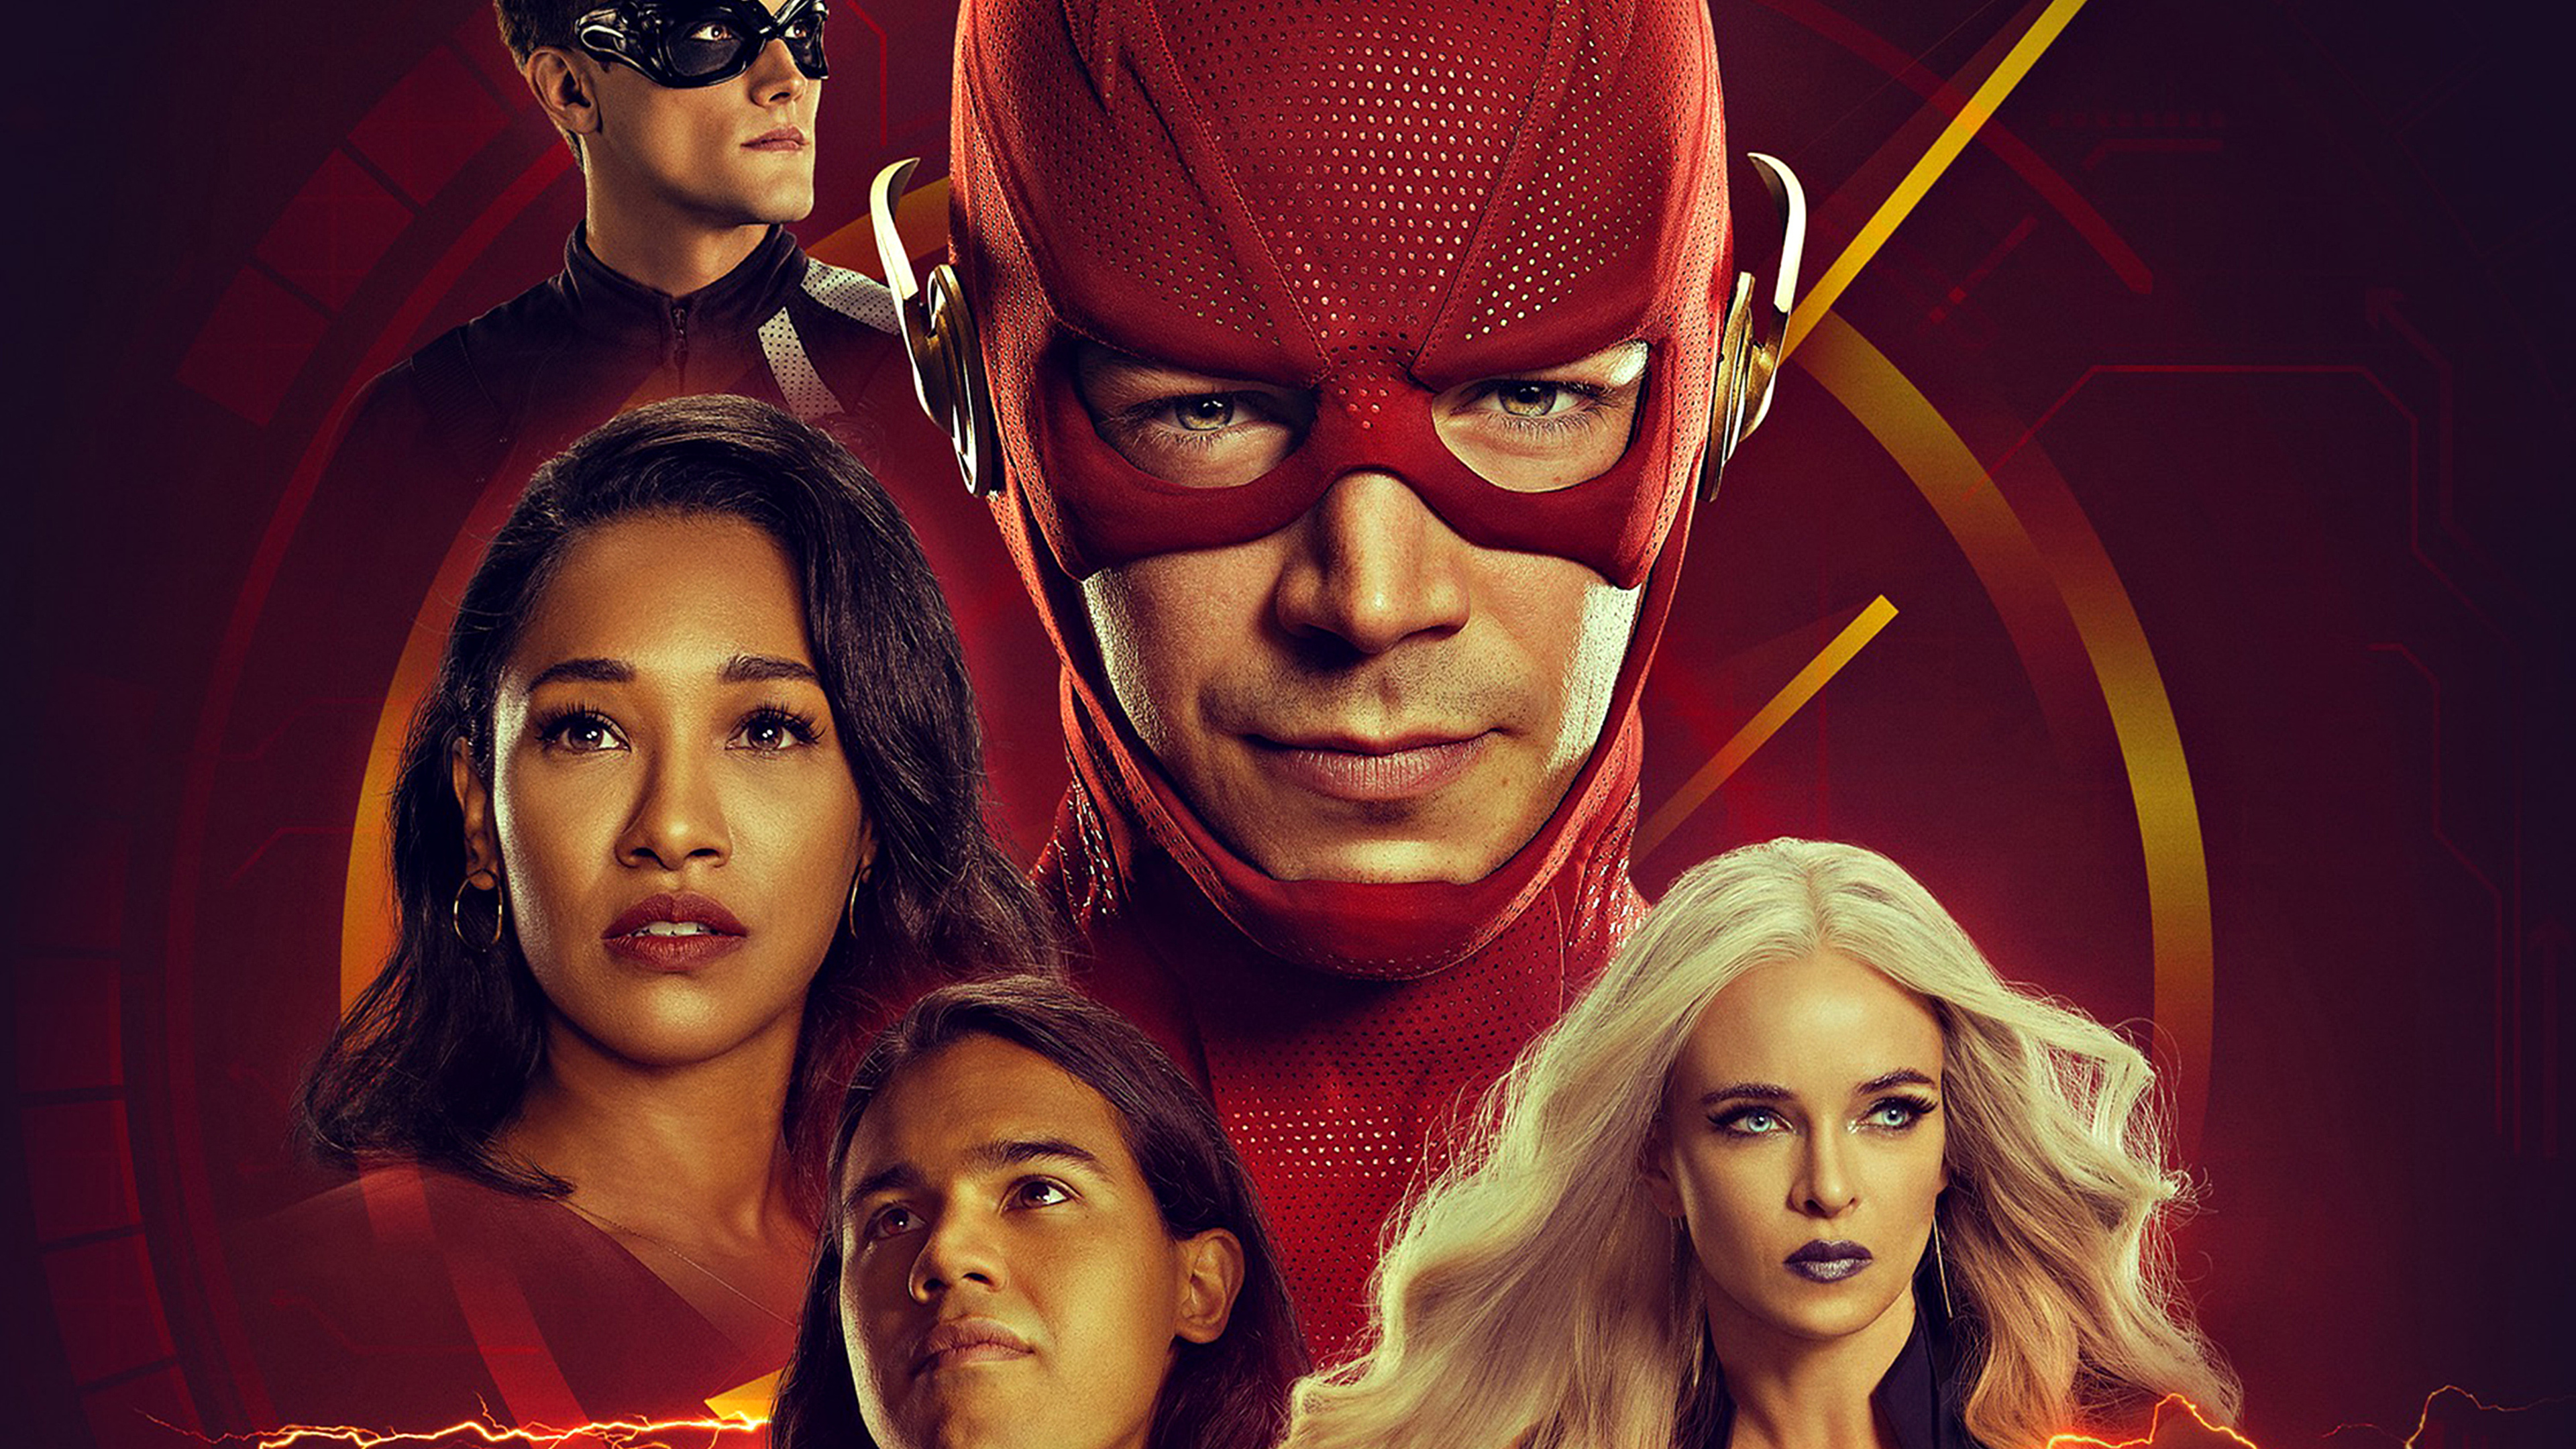 3840x2160 The Flash Season 6 4k Hd 4k Wallpapers Images